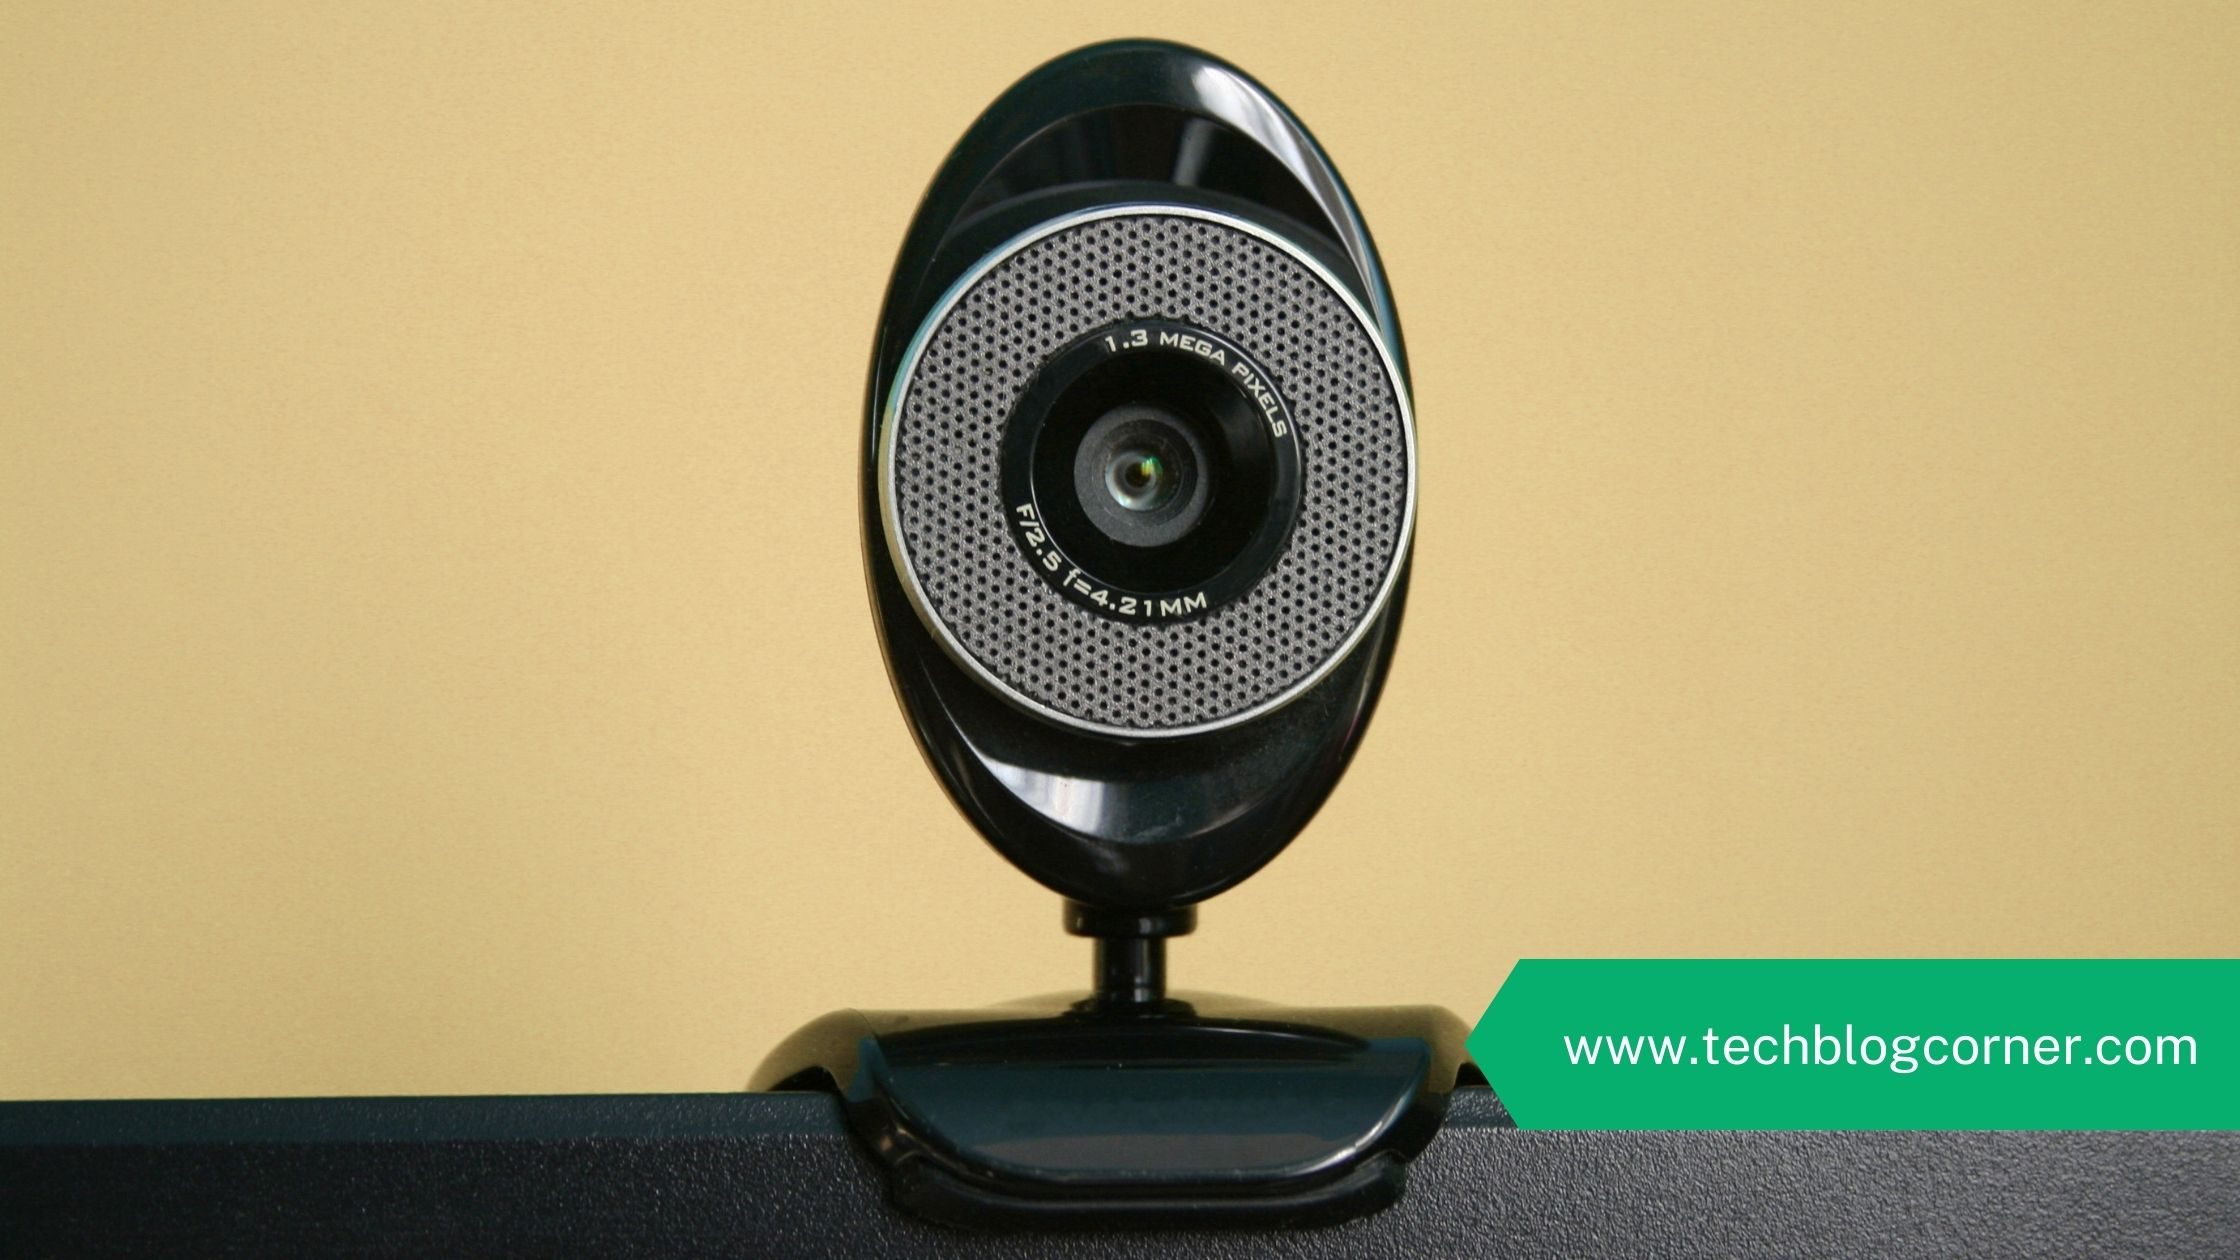 How to fix a webcam That's Not Working